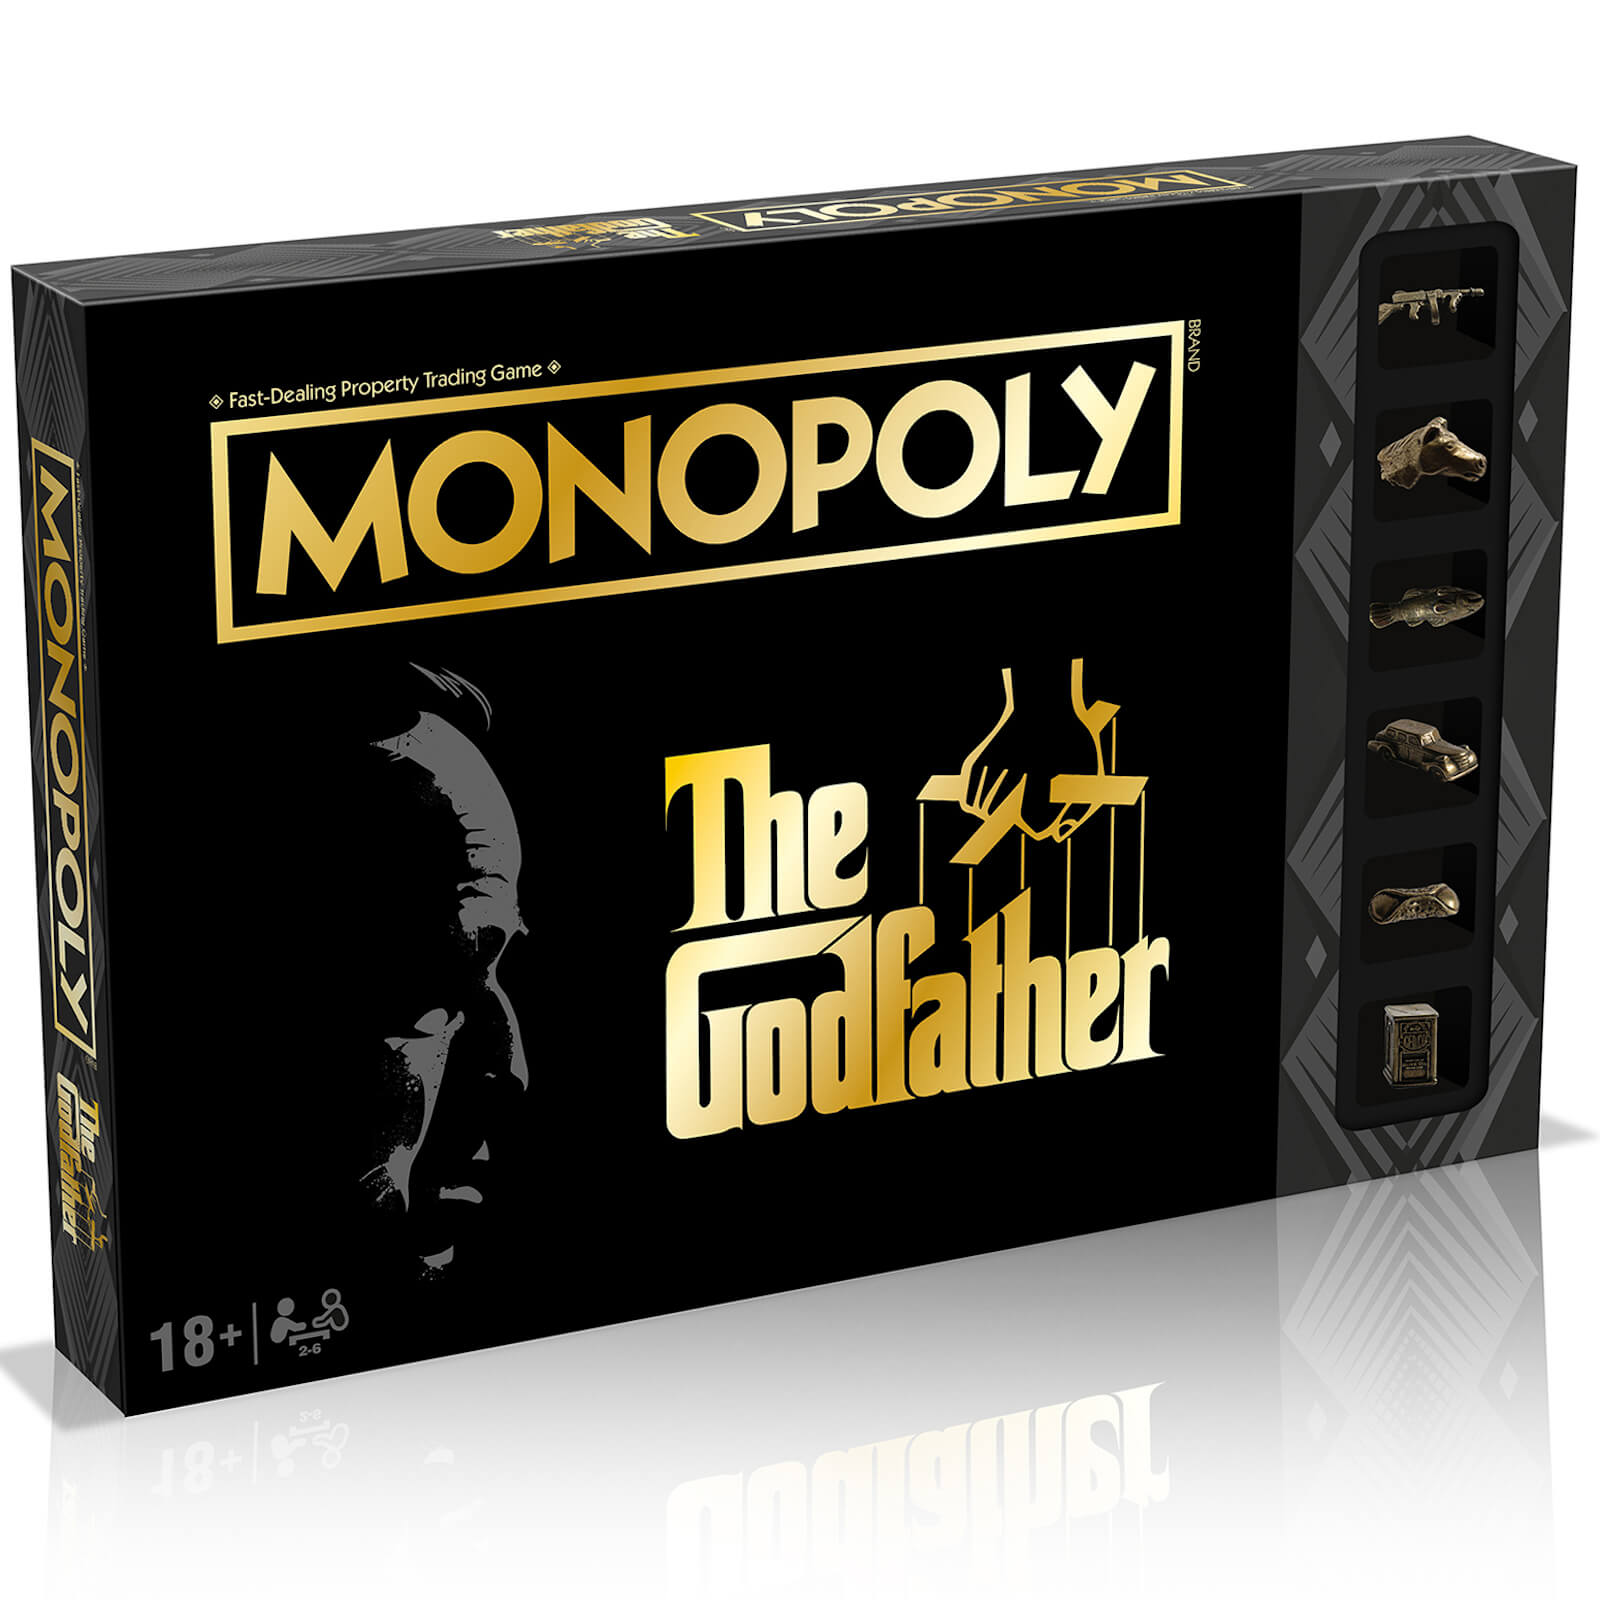 Image of Monopoly Board Game - The Godfather Edition